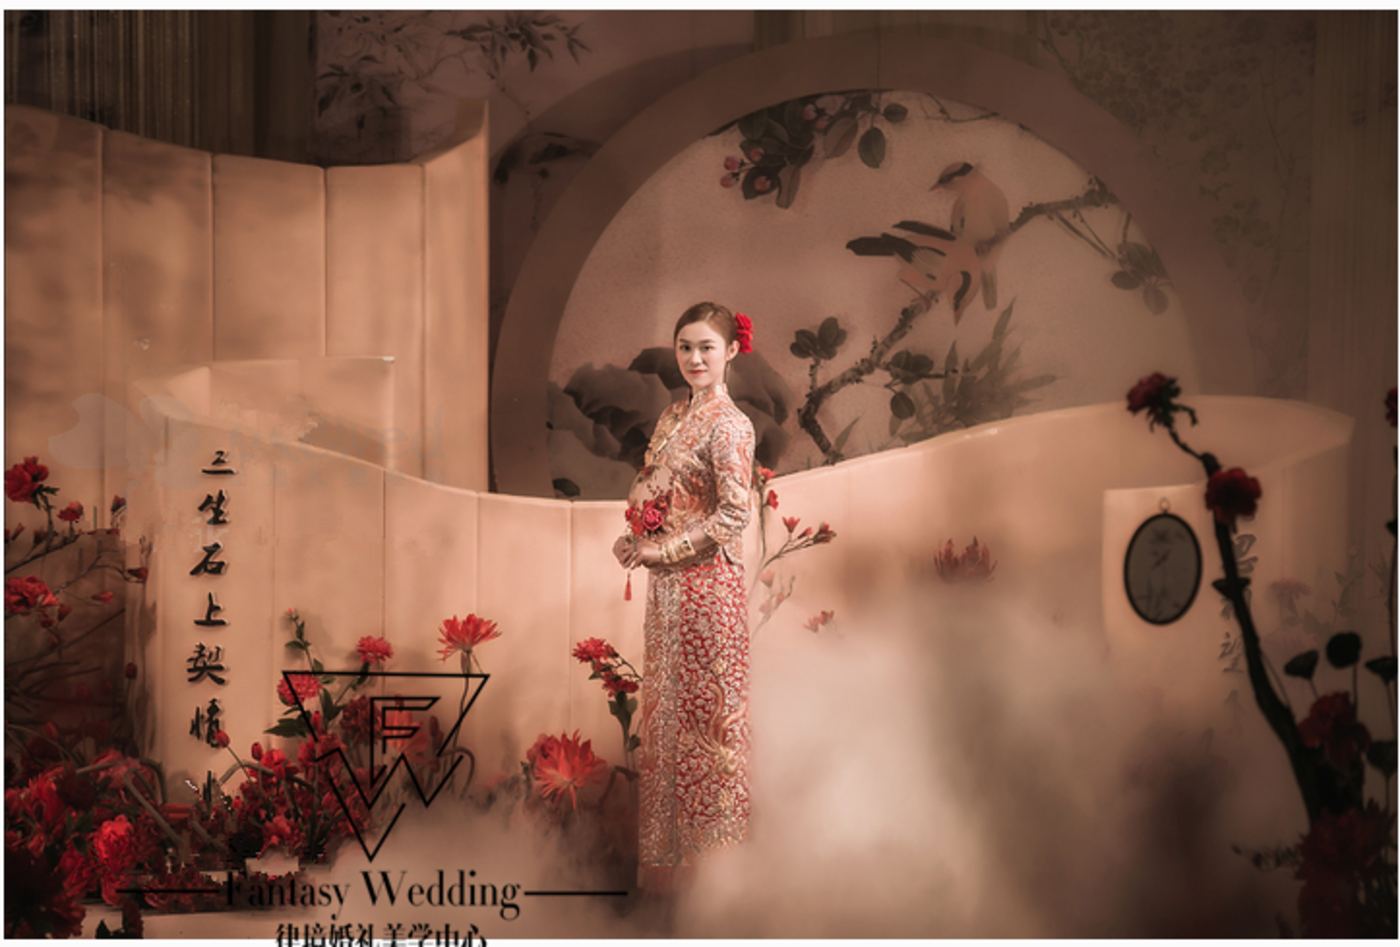 「Fantasy Wedding」 景秀未央29